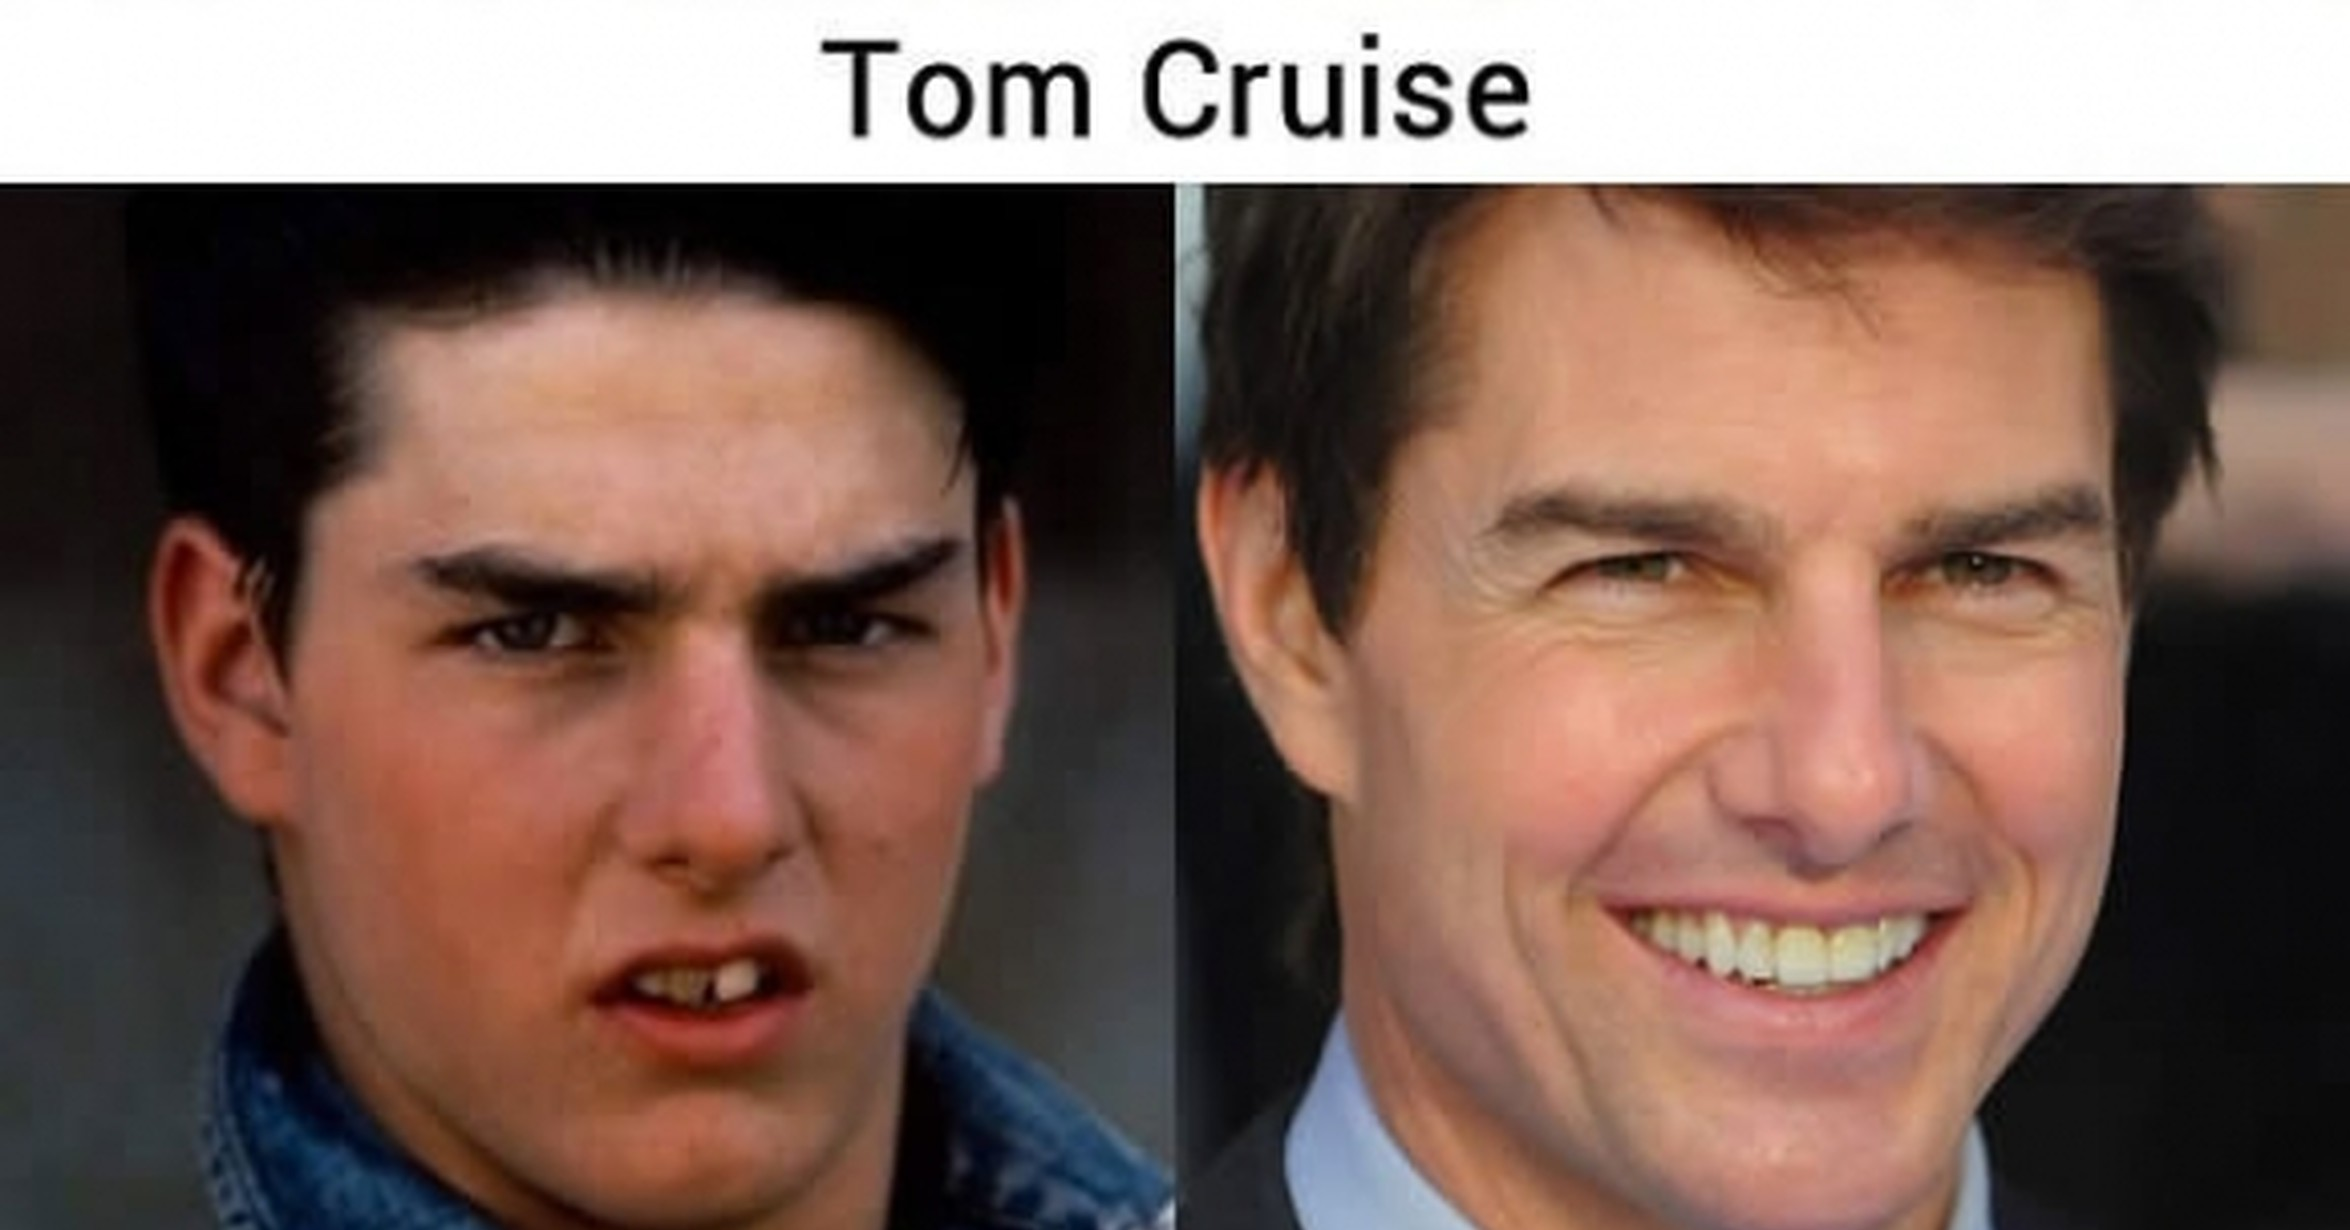 Tom Cruise - Makeovers dentales de celebridades